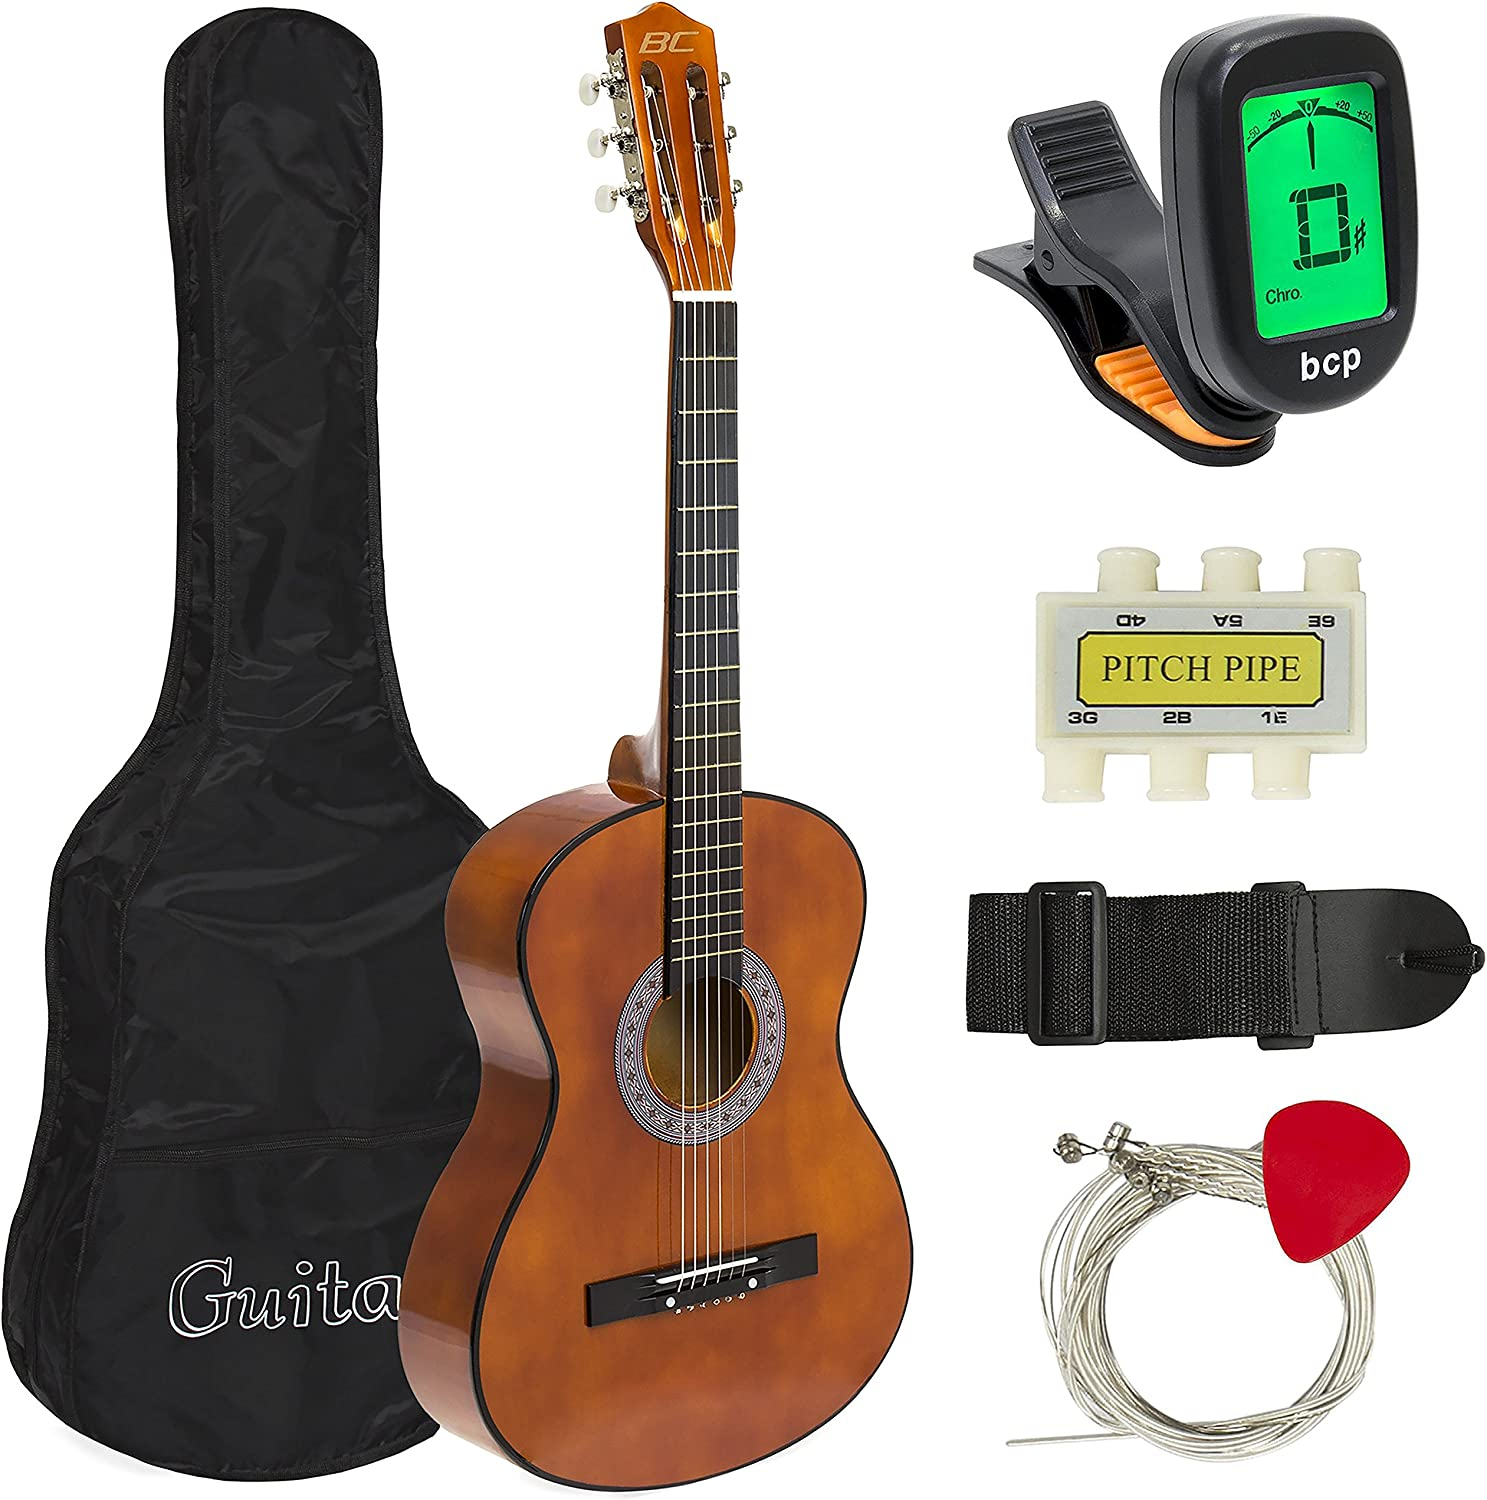 B077SFZCQW Best Choice Products 38in Beginner Acoustic Guitar Starter Kit w/ Case, Strap, Digital E-Tuner, Pick, Pitch Pipe, Strings - Brown 910WRLj-QrL